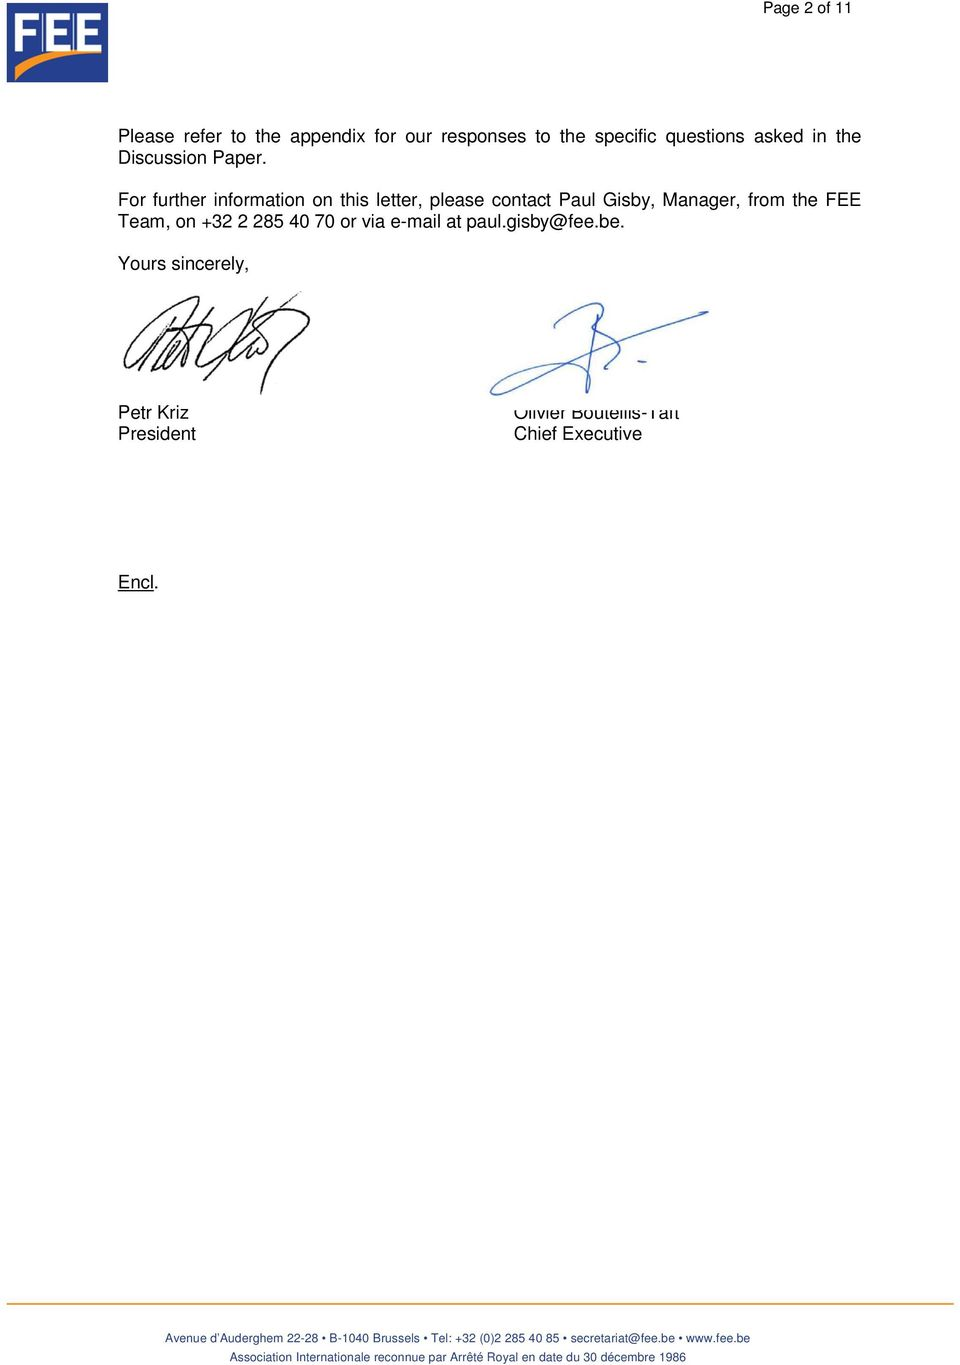 For further information on this letter, please contact Paul Gisby, Manager, from the